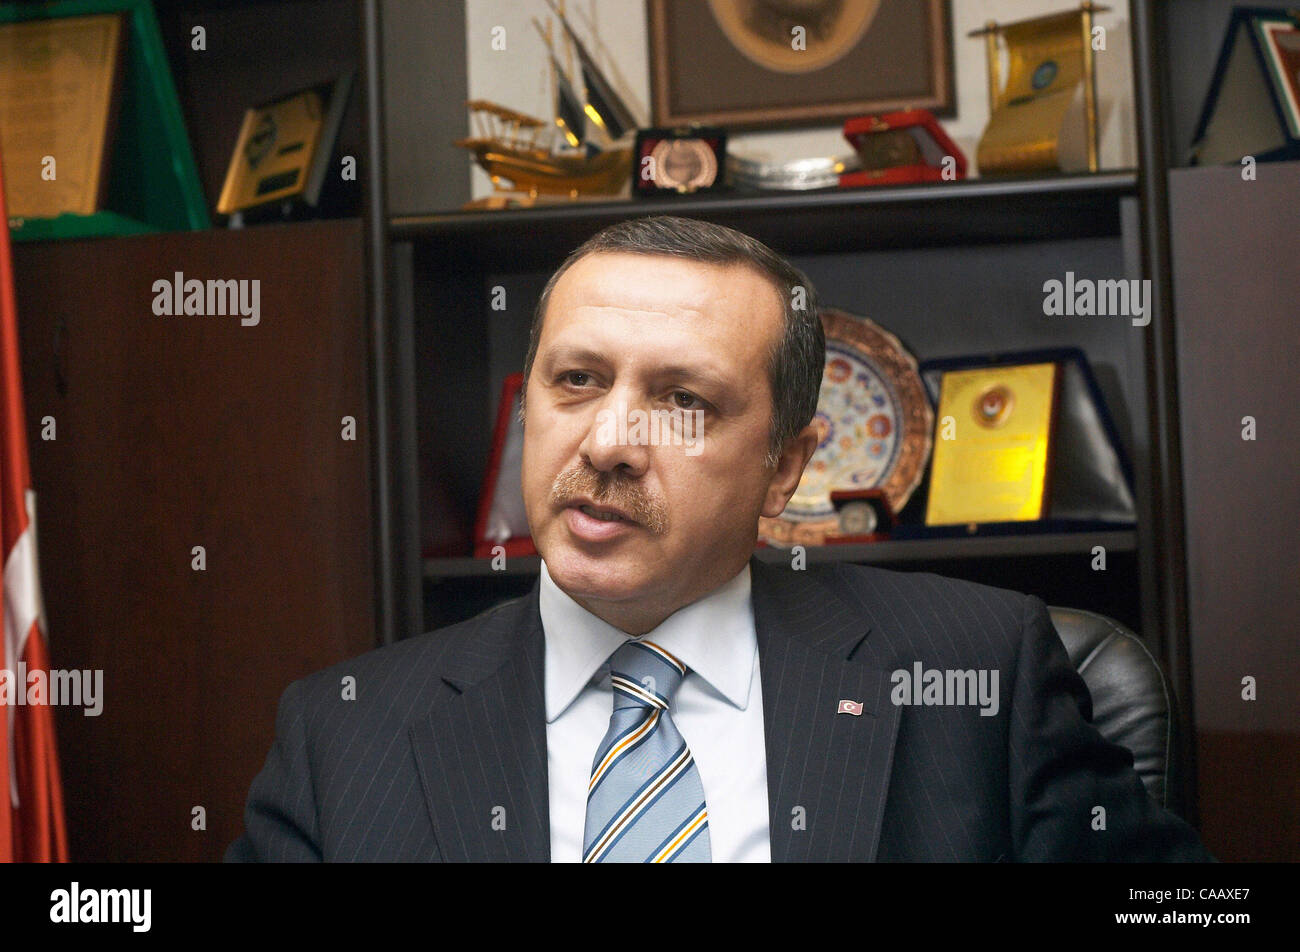 turkey home office. nov 25, 2003; istanbul, turkey; recep tayyip erdogan, prime minister of turkey, in an interview his home / office days after the turkey 4